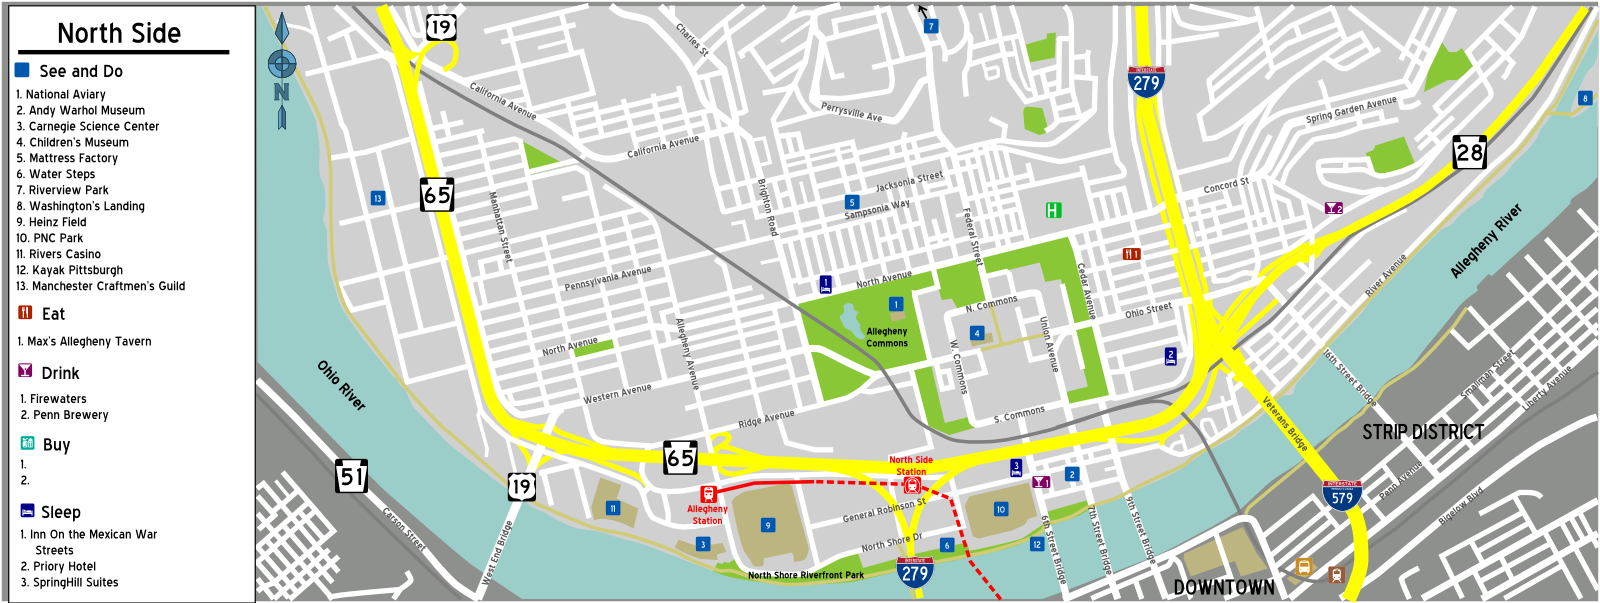 File:Pittsburgh northside map.png - Wikimedia Commons